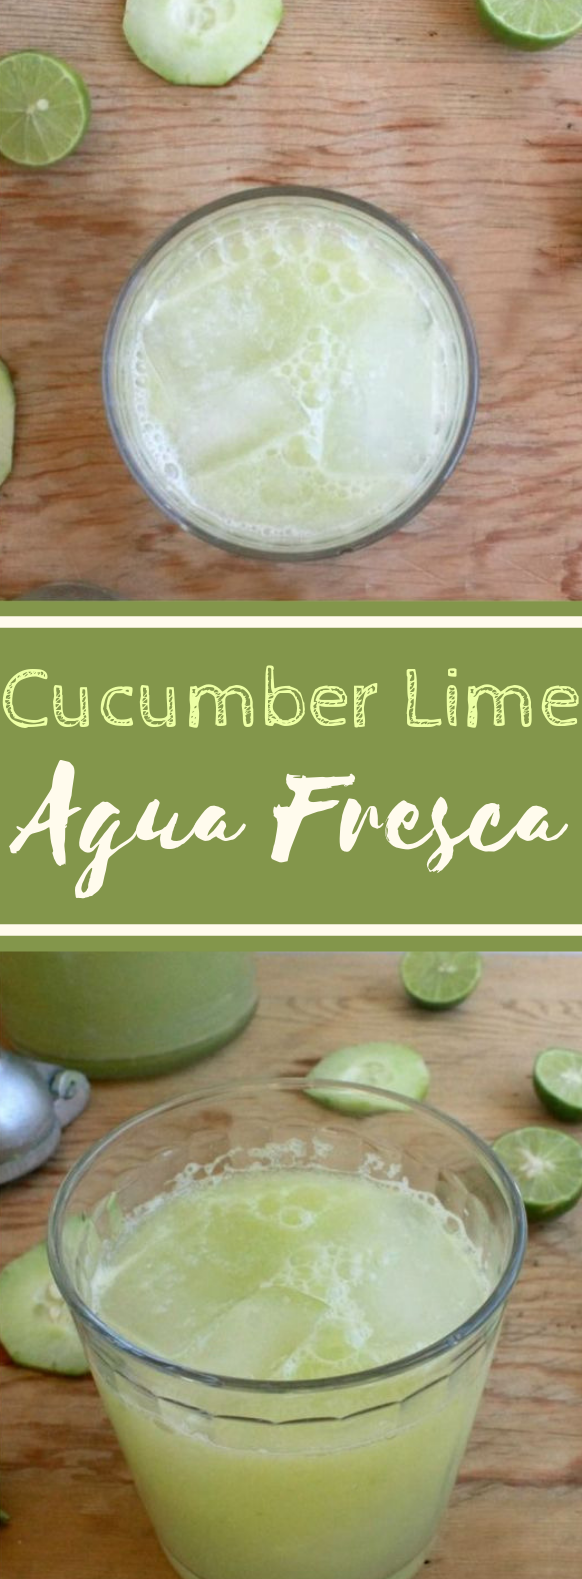 Cucumber Lime Agua Fresca #summer #drinks